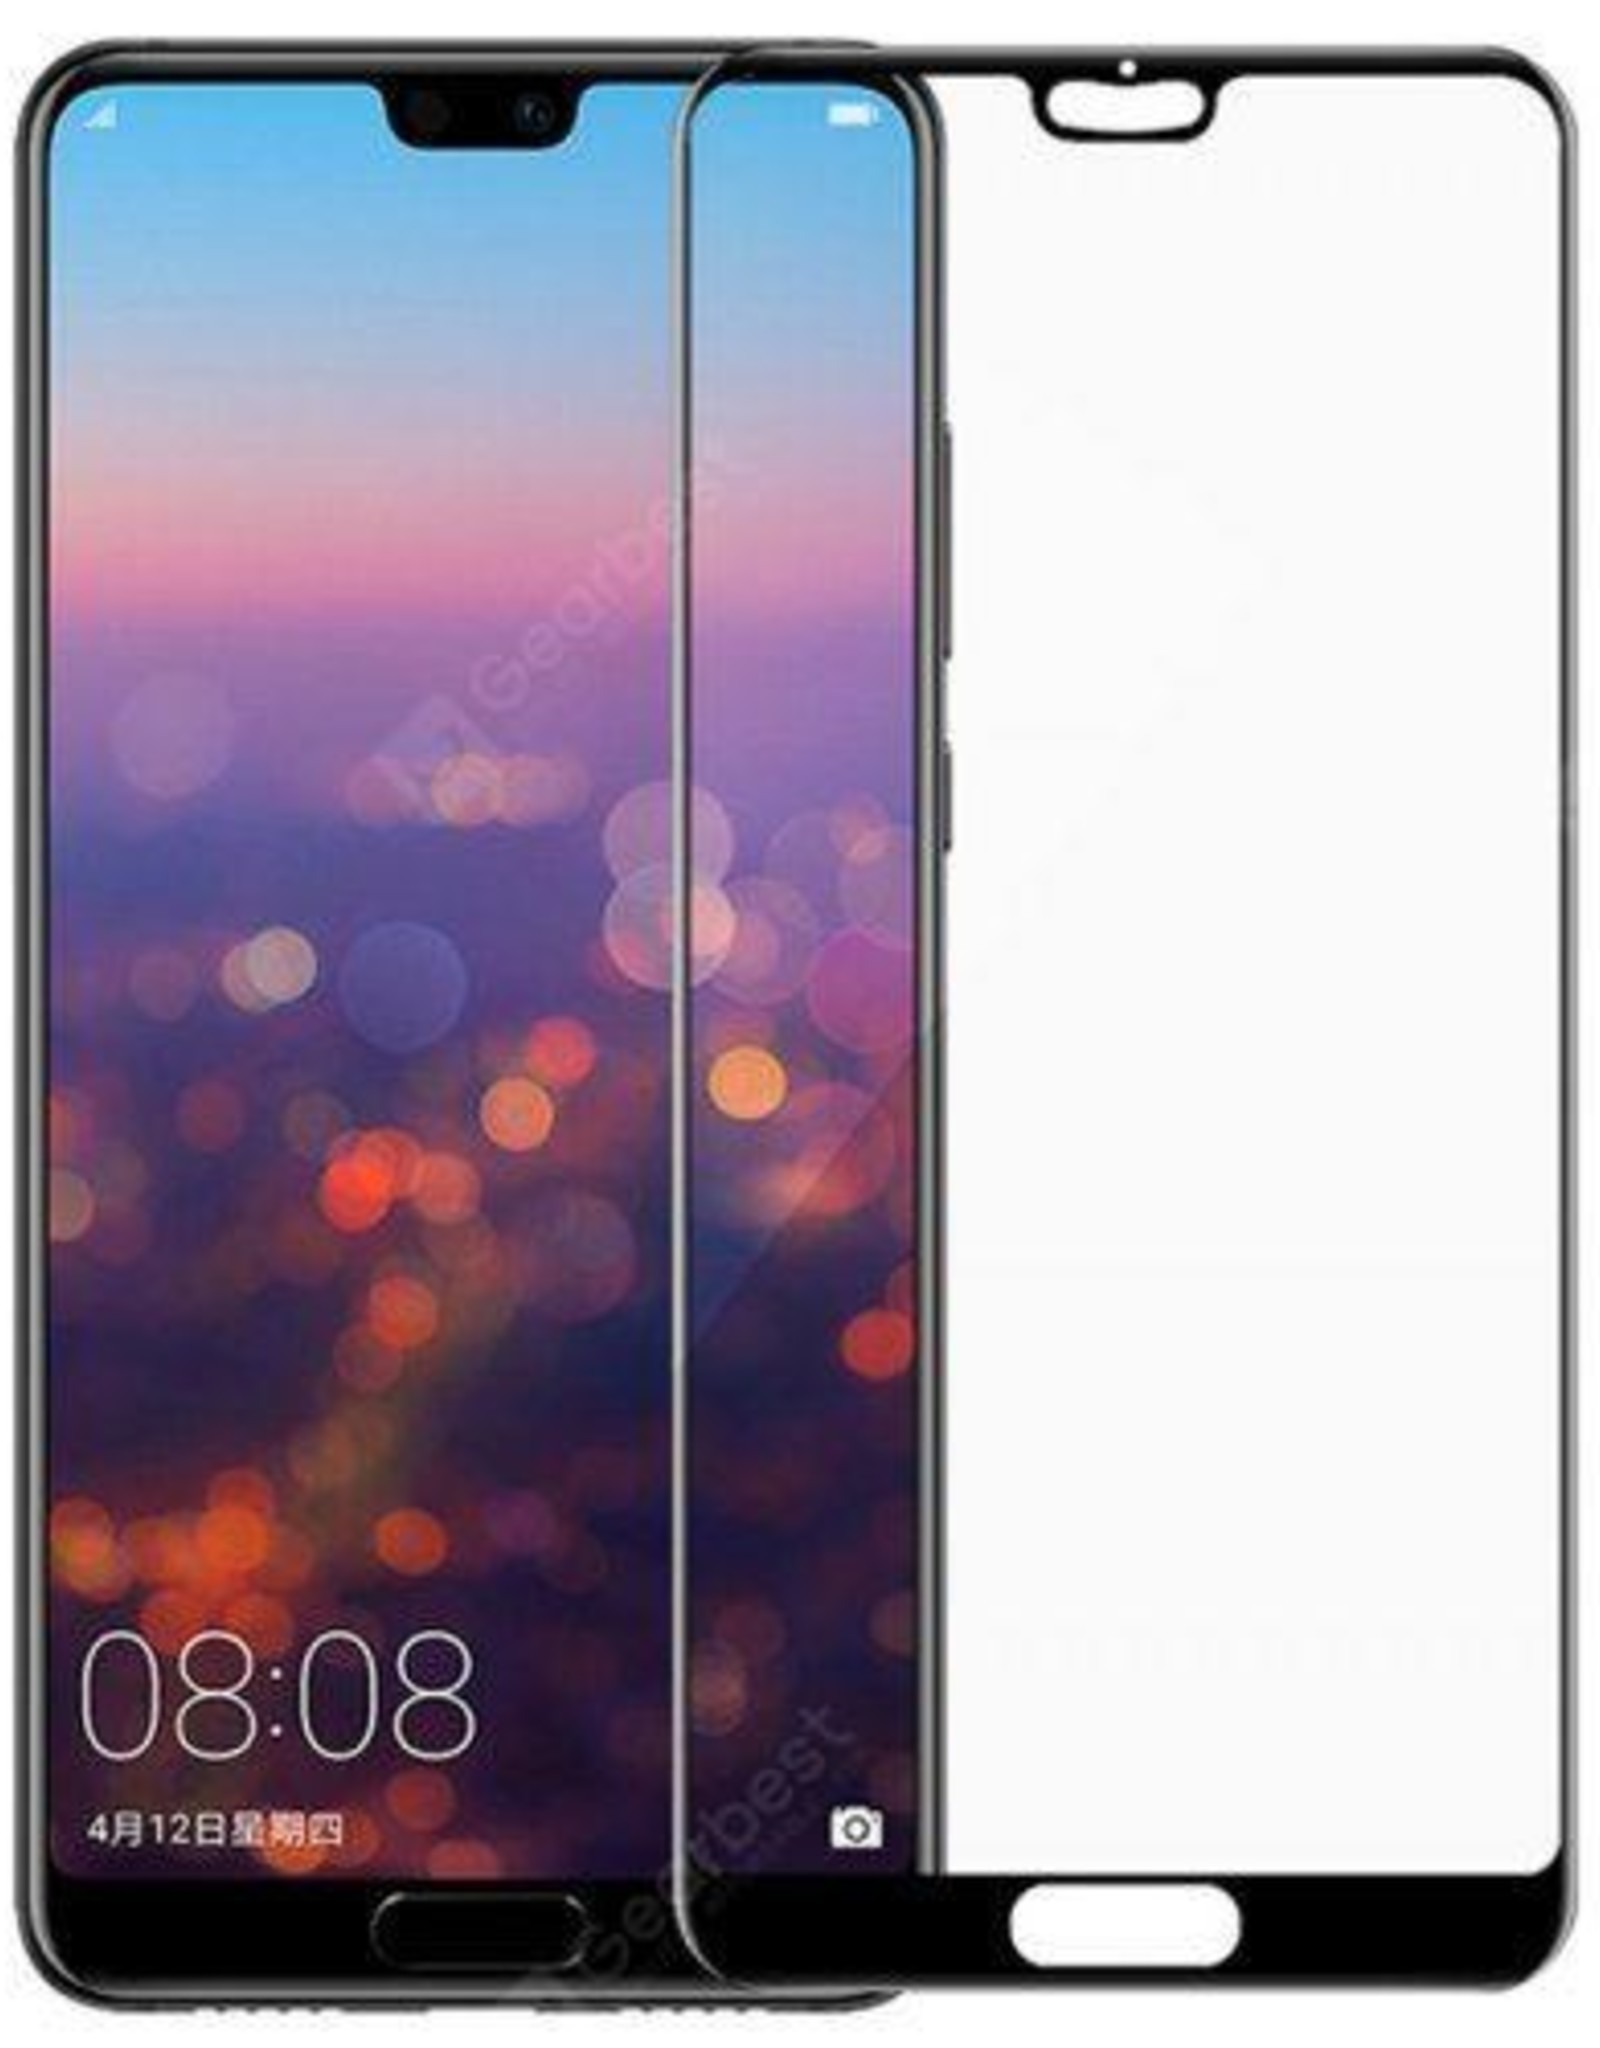 22 cases - Glass Screen Protector for Huawei P20 Pro 118-2024